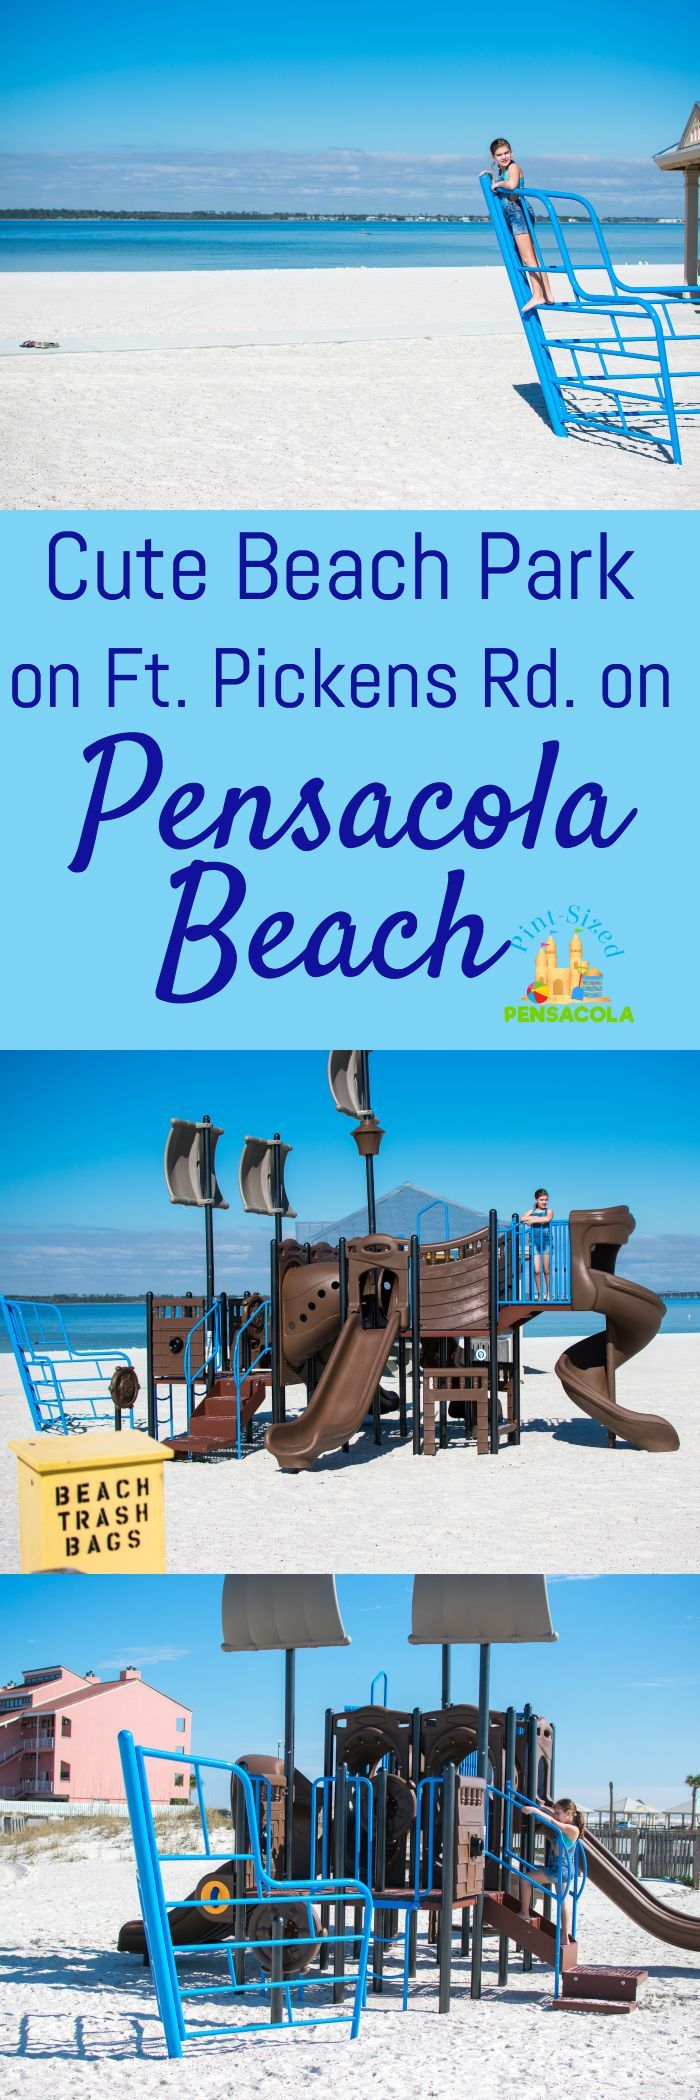 Beach Park on Ft. Pickens Road On Pensacola Beach